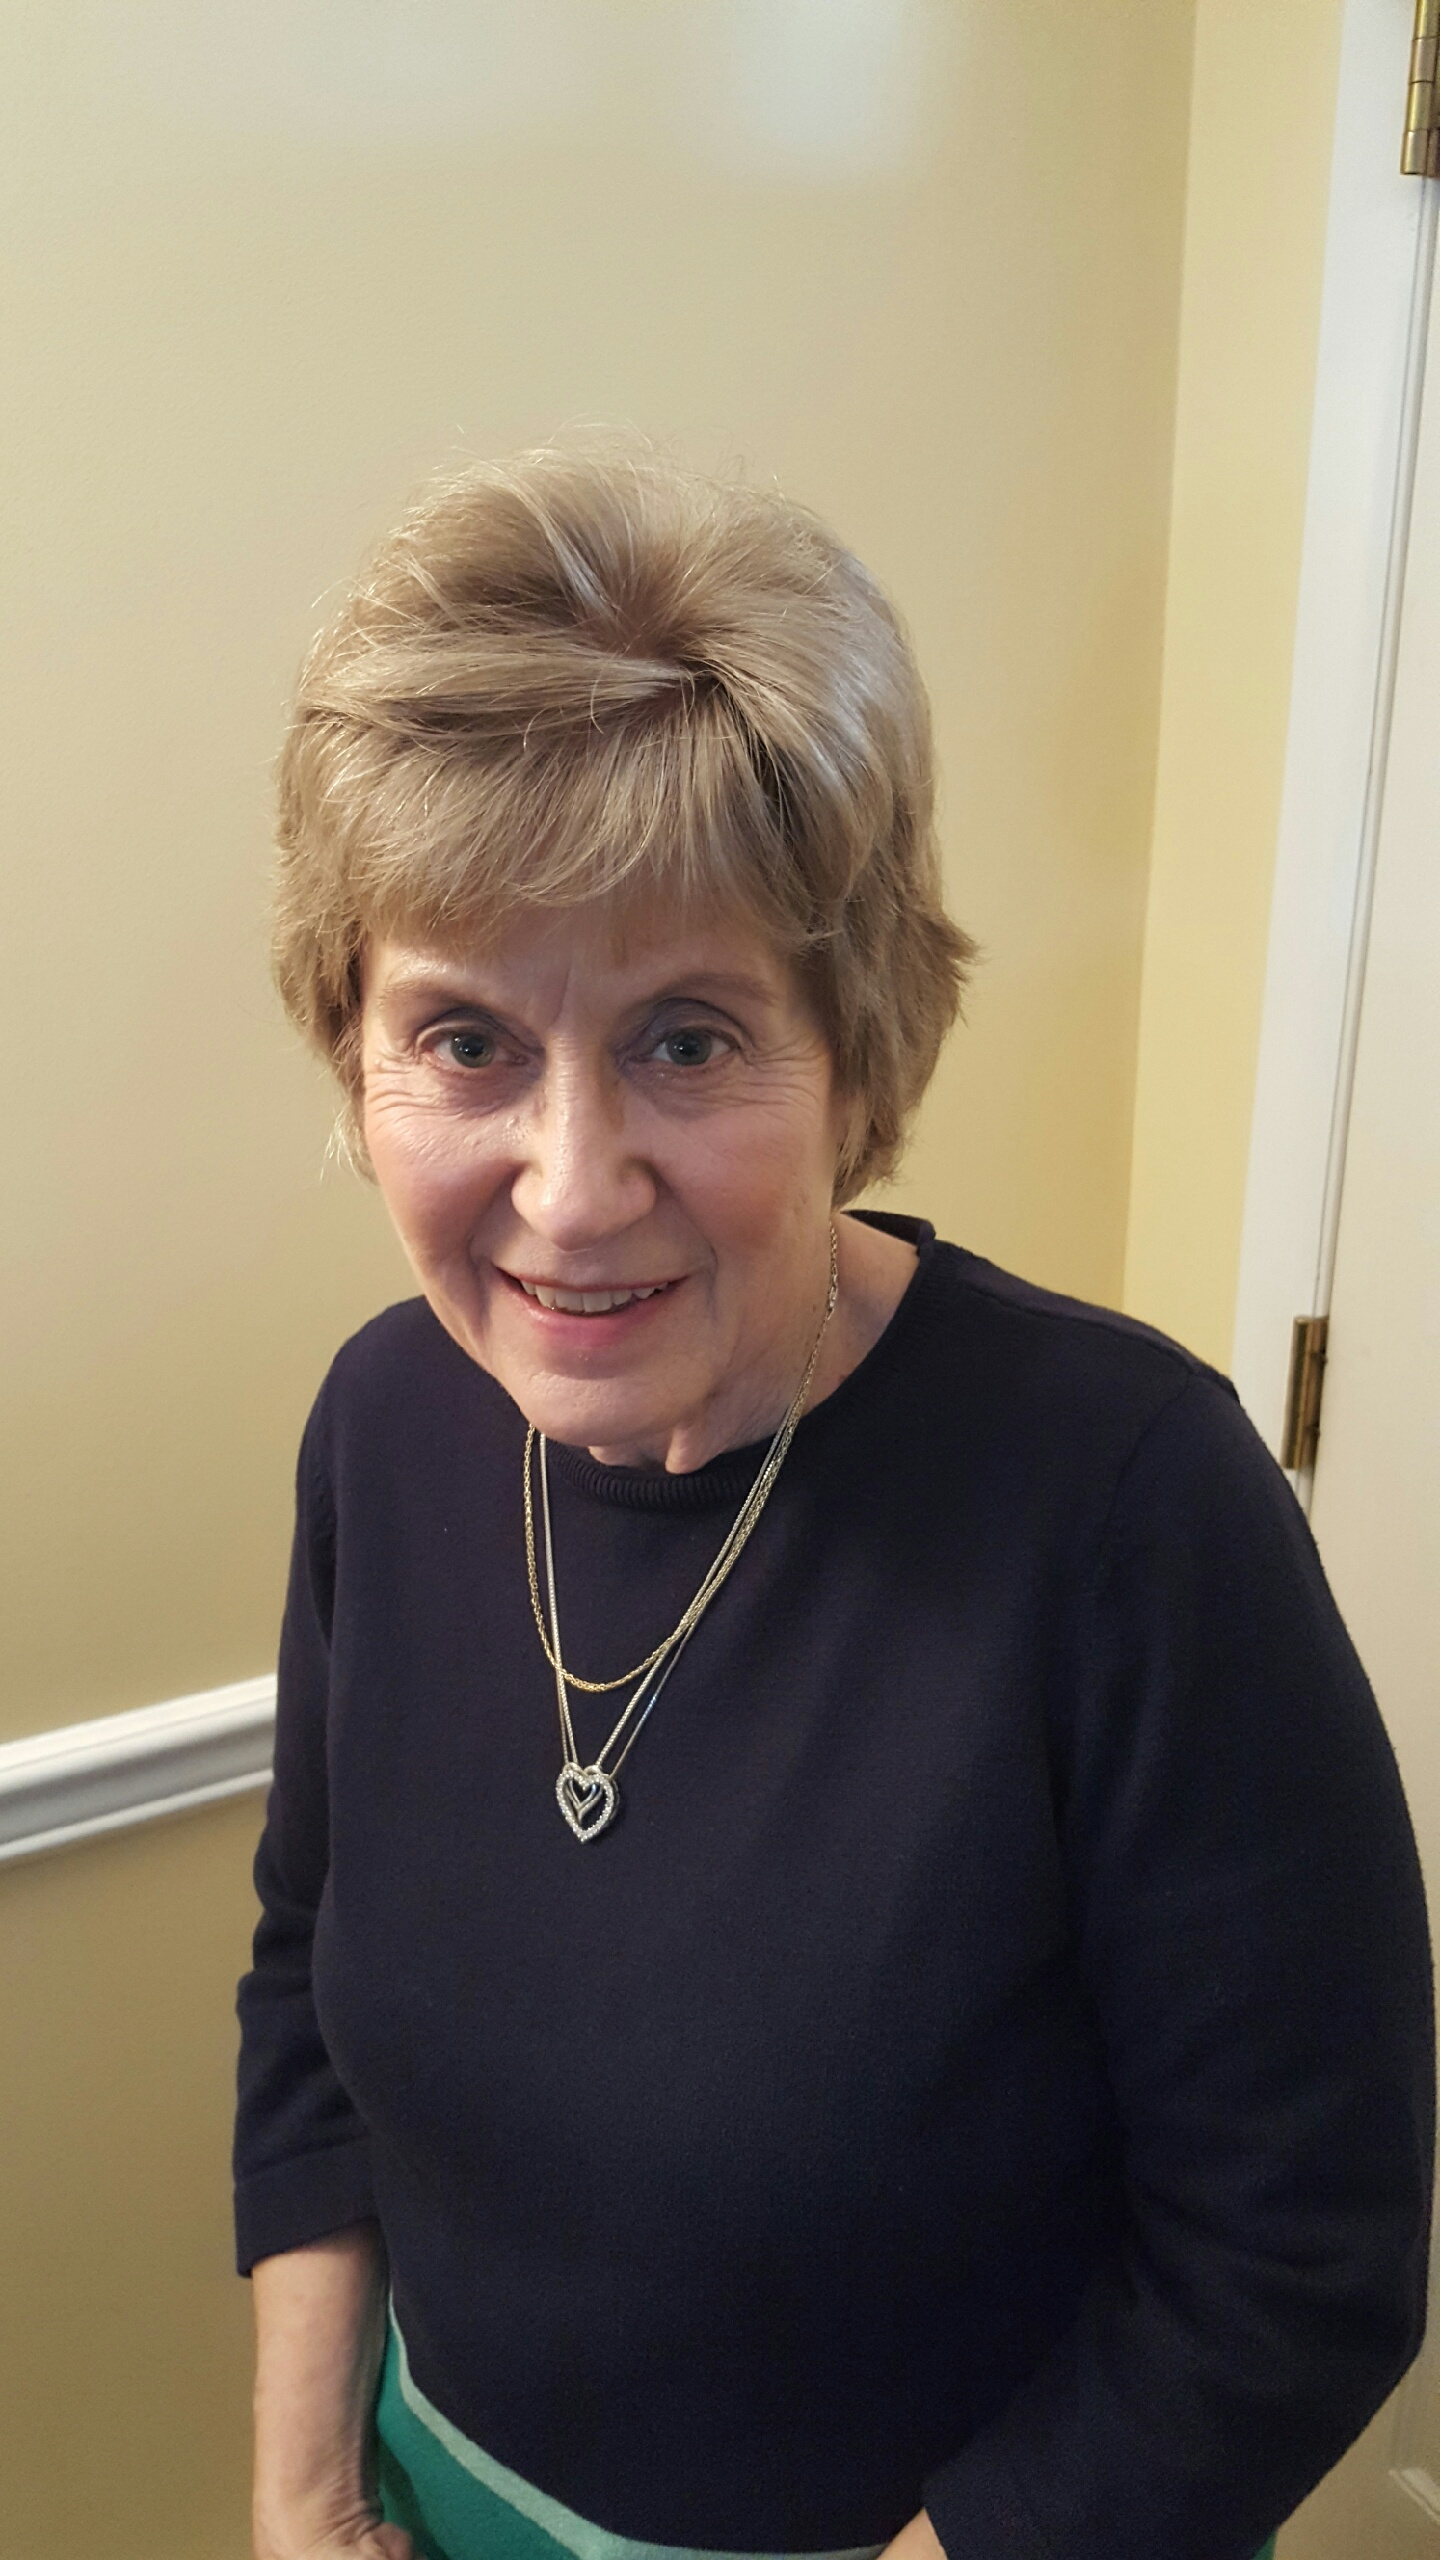 psoriasis patient advocate Judy Donnelly